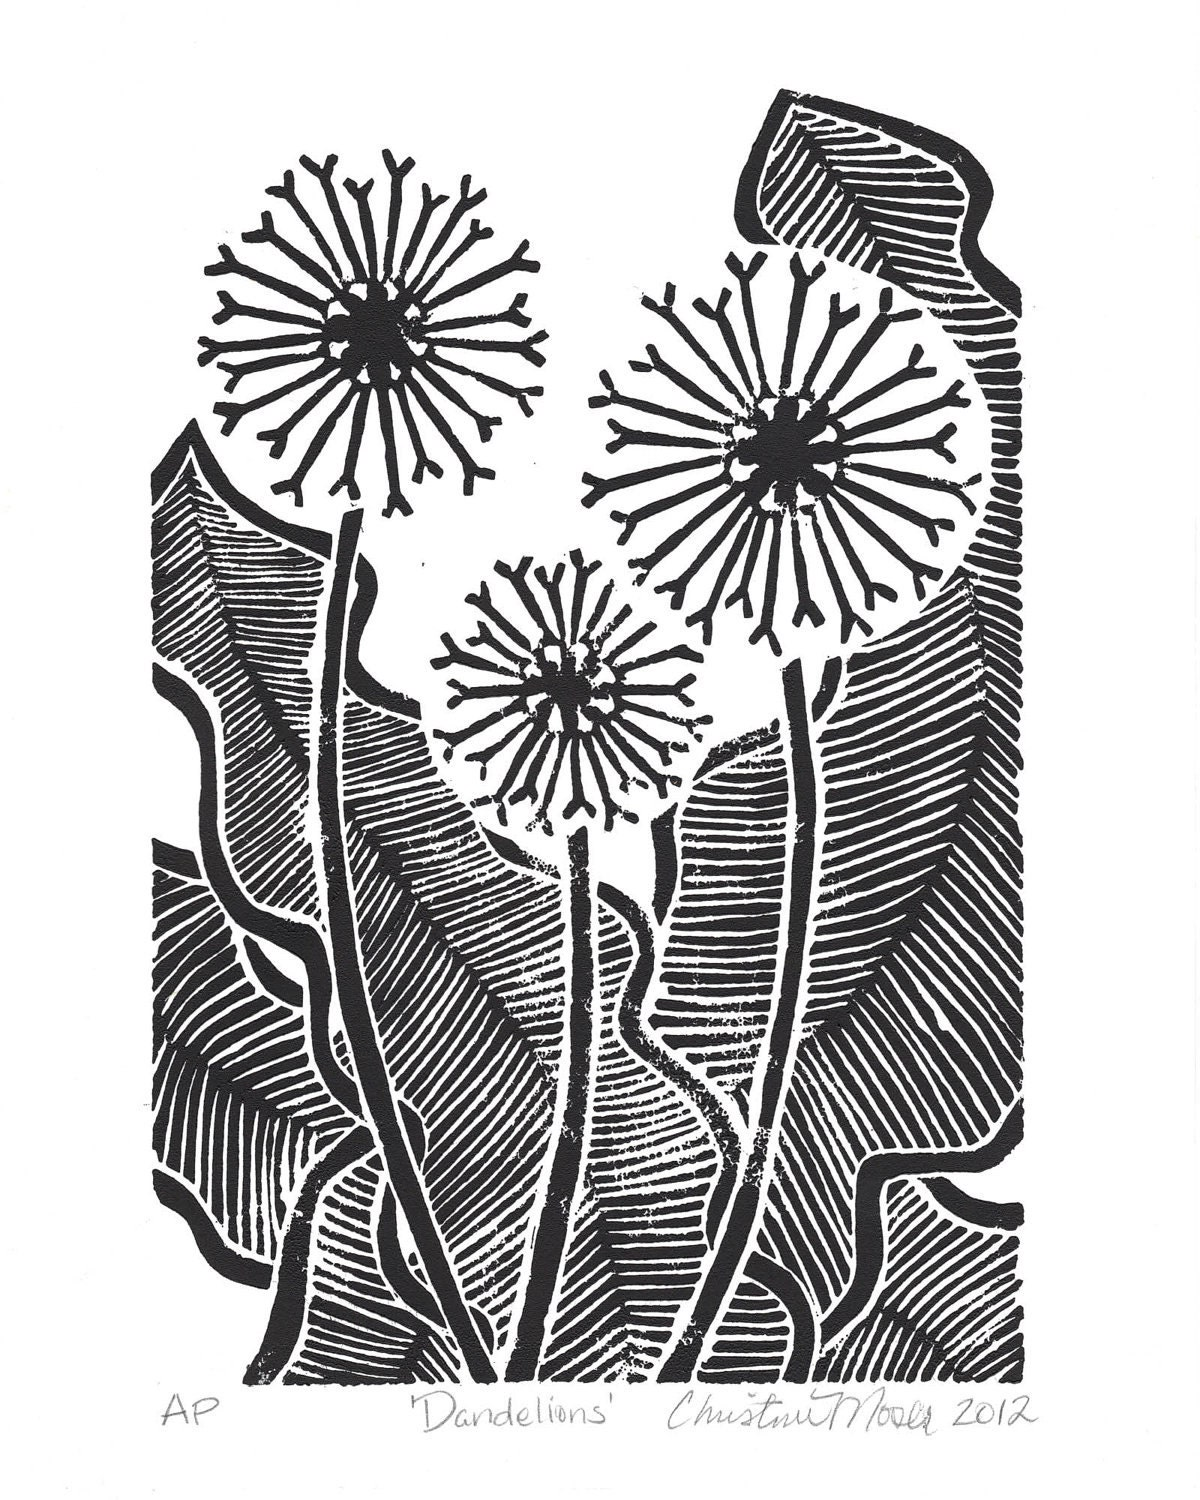 linoleum block print 39 dandelions 39 limited edition. Black Bedroom Furniture Sets. Home Design Ideas